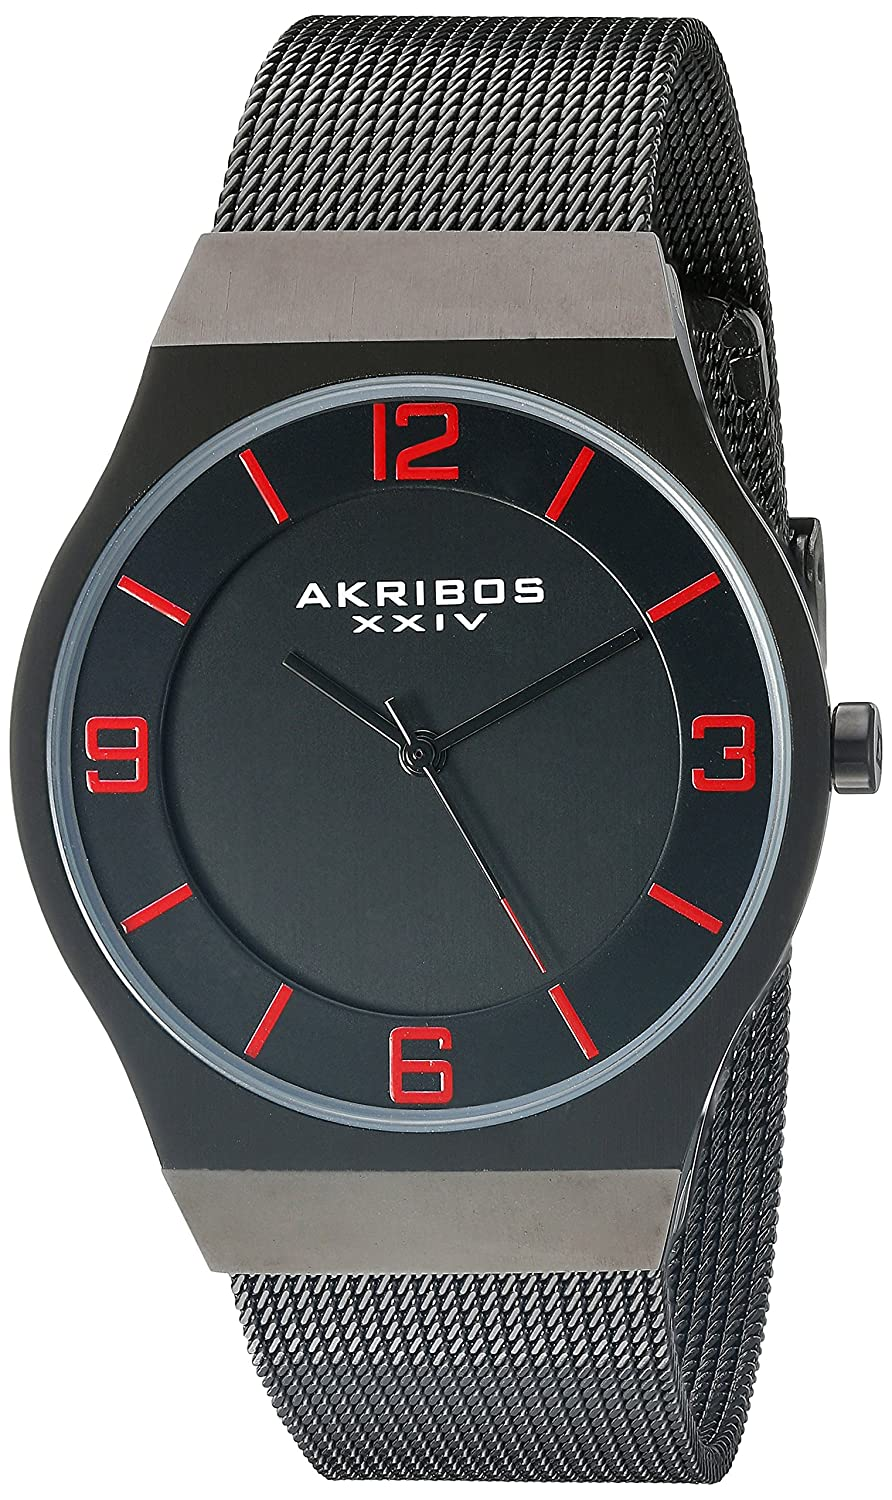 Akribos XXIV Men 's ak851bk Round Black Dial Three Hand Quartzブラックブレスレット腕時計 B013GEJ98A